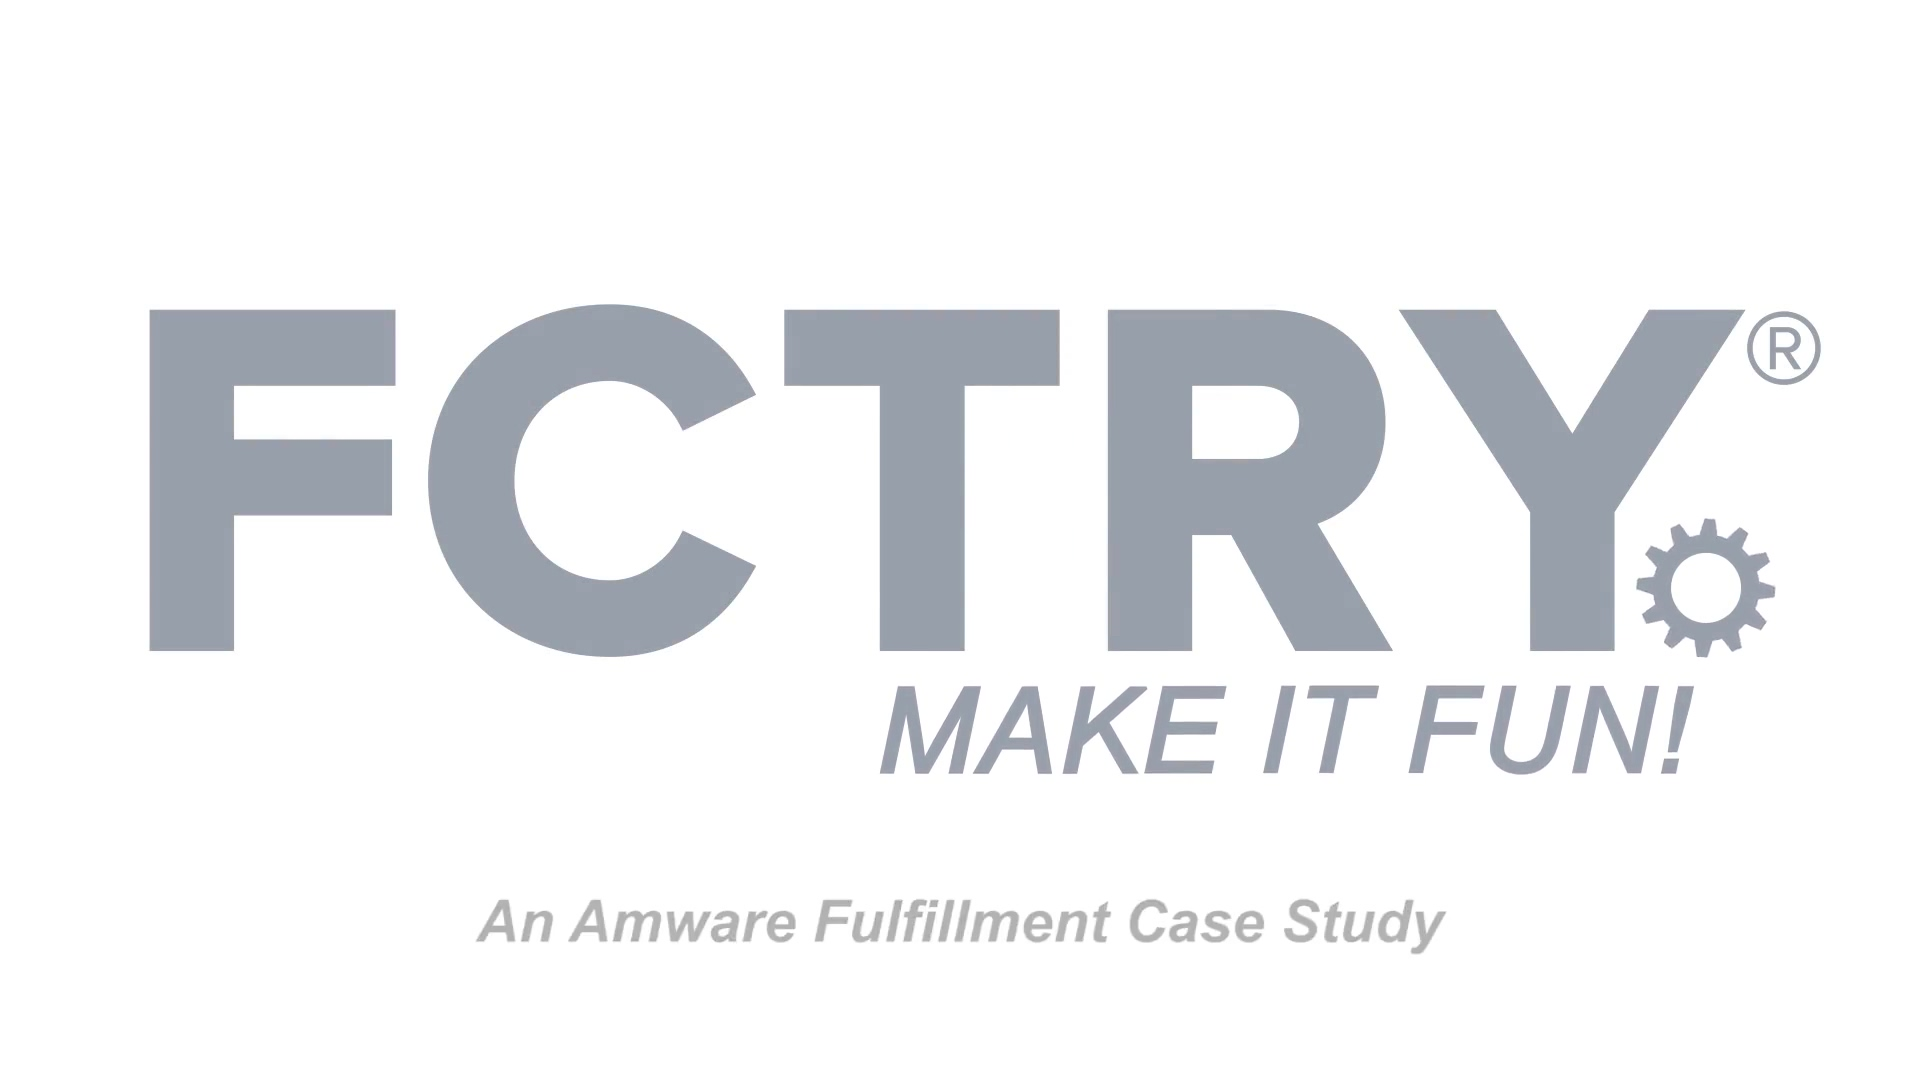 Amware-FCTRY-Video-Case-Study-Final